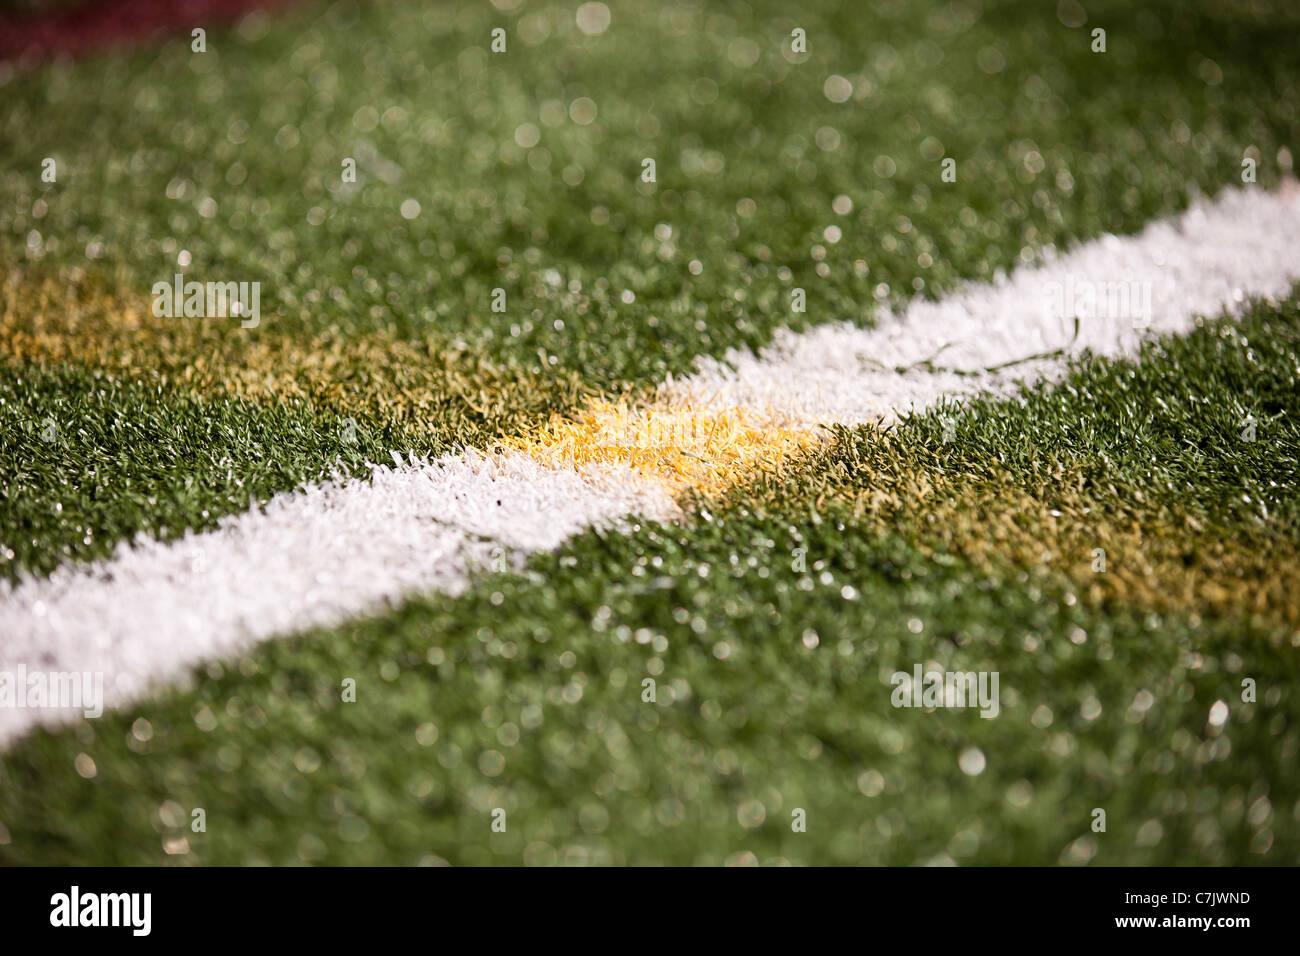 Astro Turf with white and yellow soccer lines - Stock Image